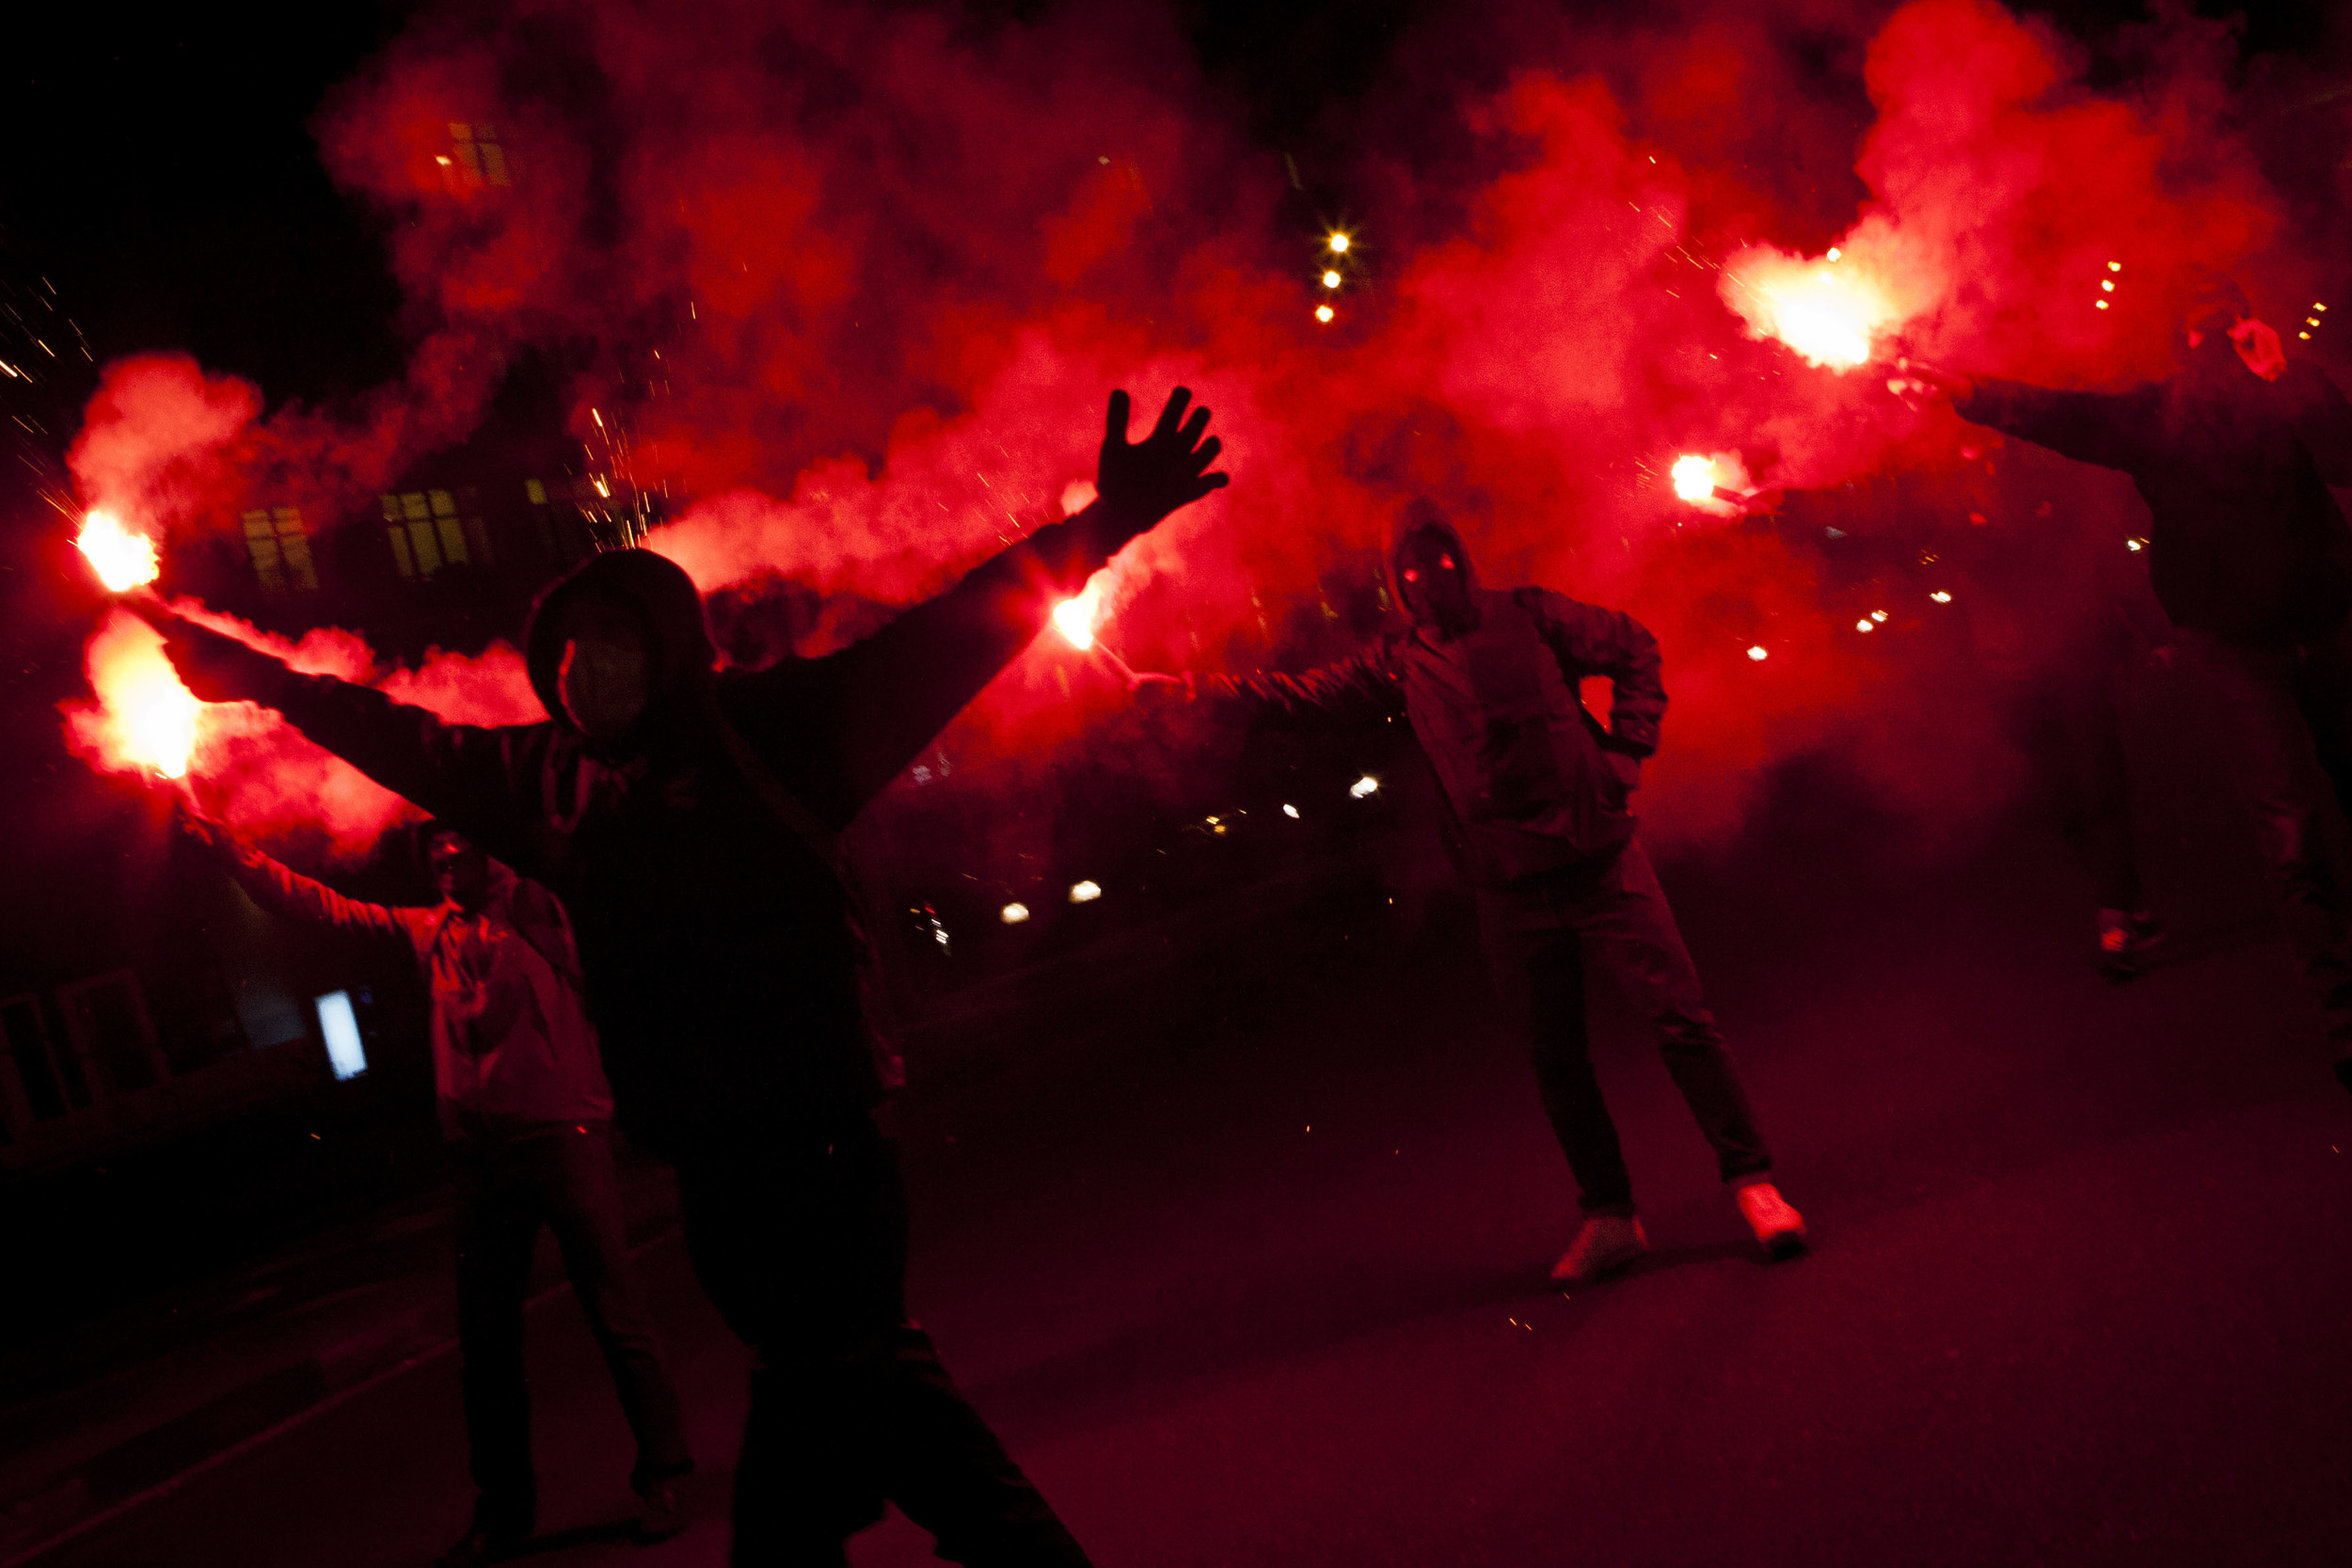 March 1, 2012 antifascists' protest with a Moscow street being blocked